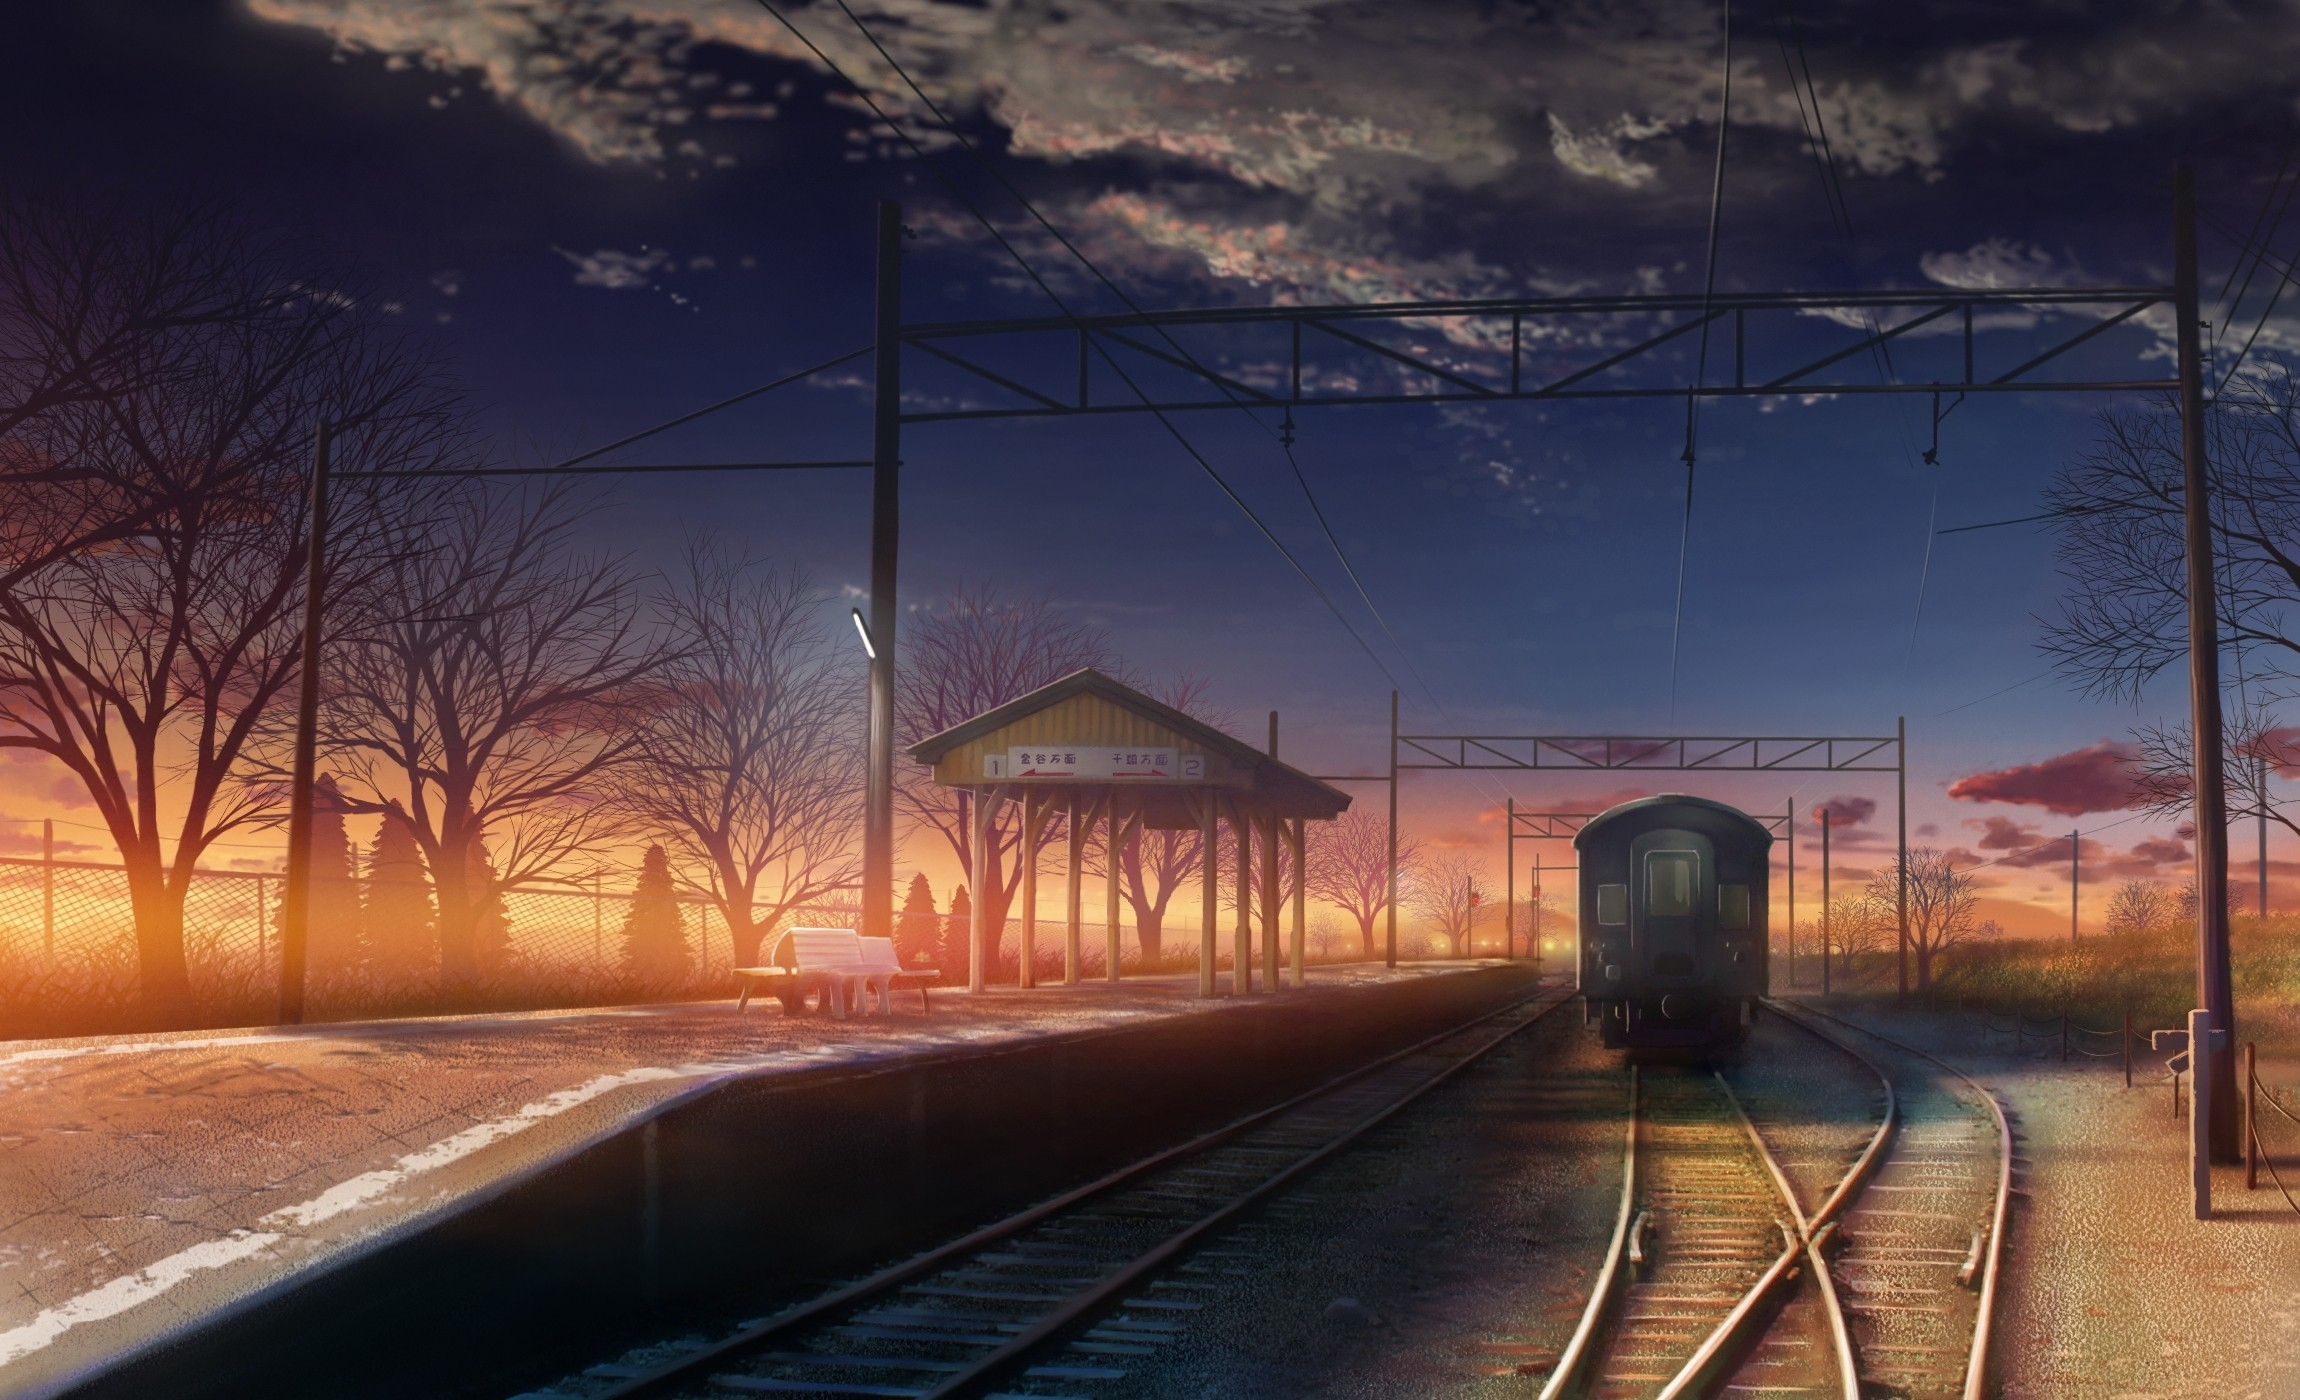 Free Download Scenic 5 Centimeters Per Second Drawings Anime Hd